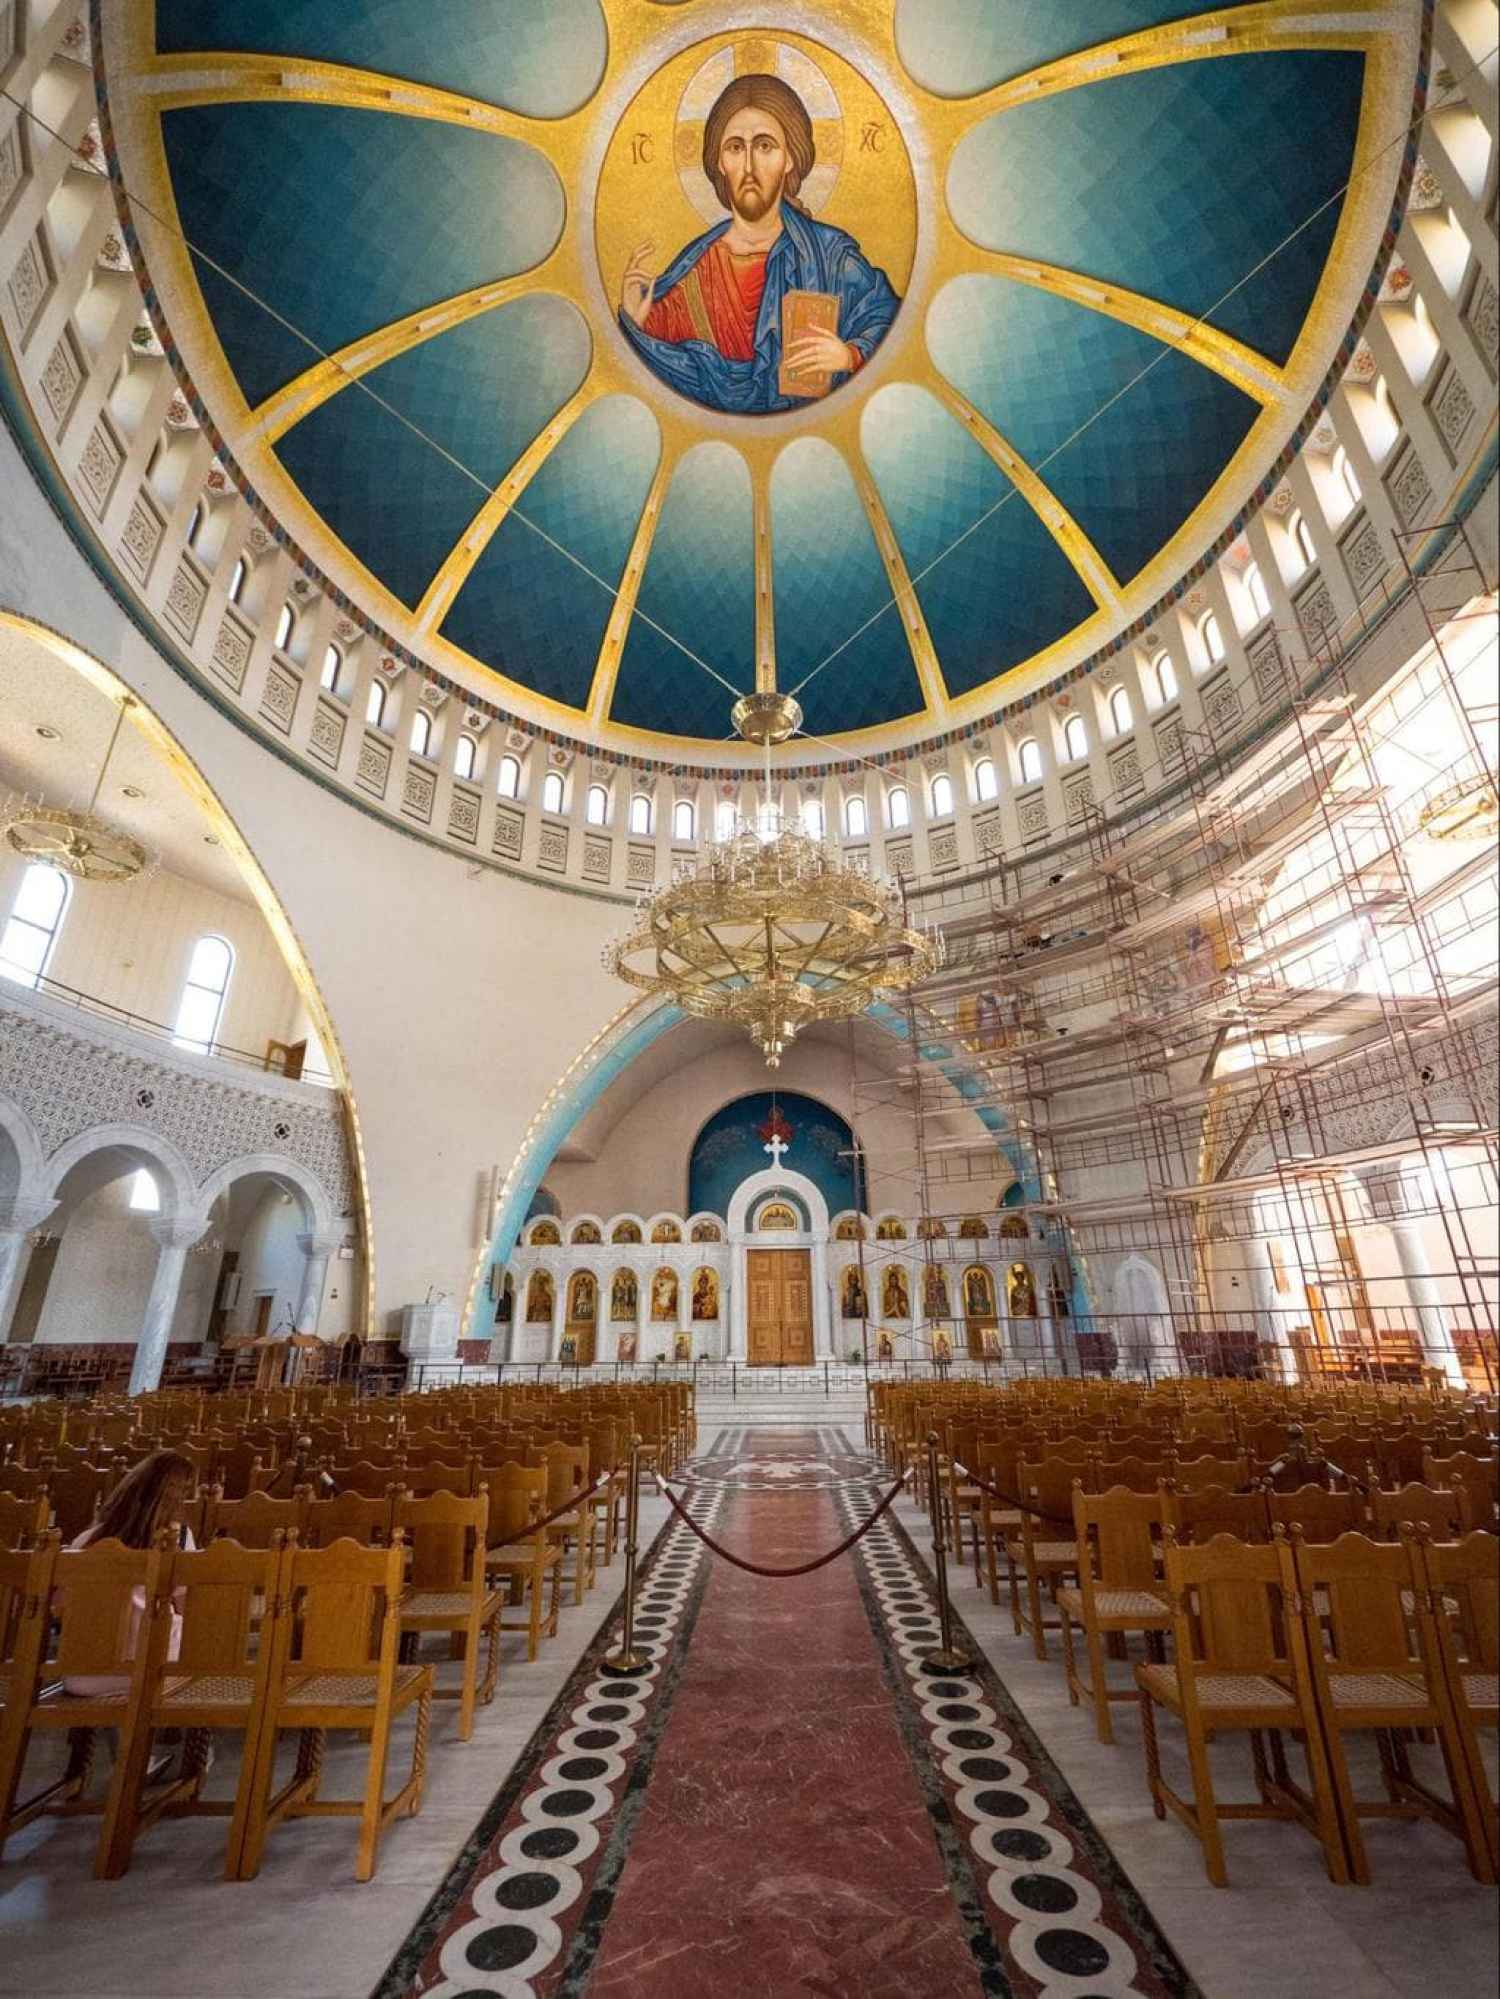 The dome murals inside the Resurrection of Christ Orthodox Cathedral in Tirana